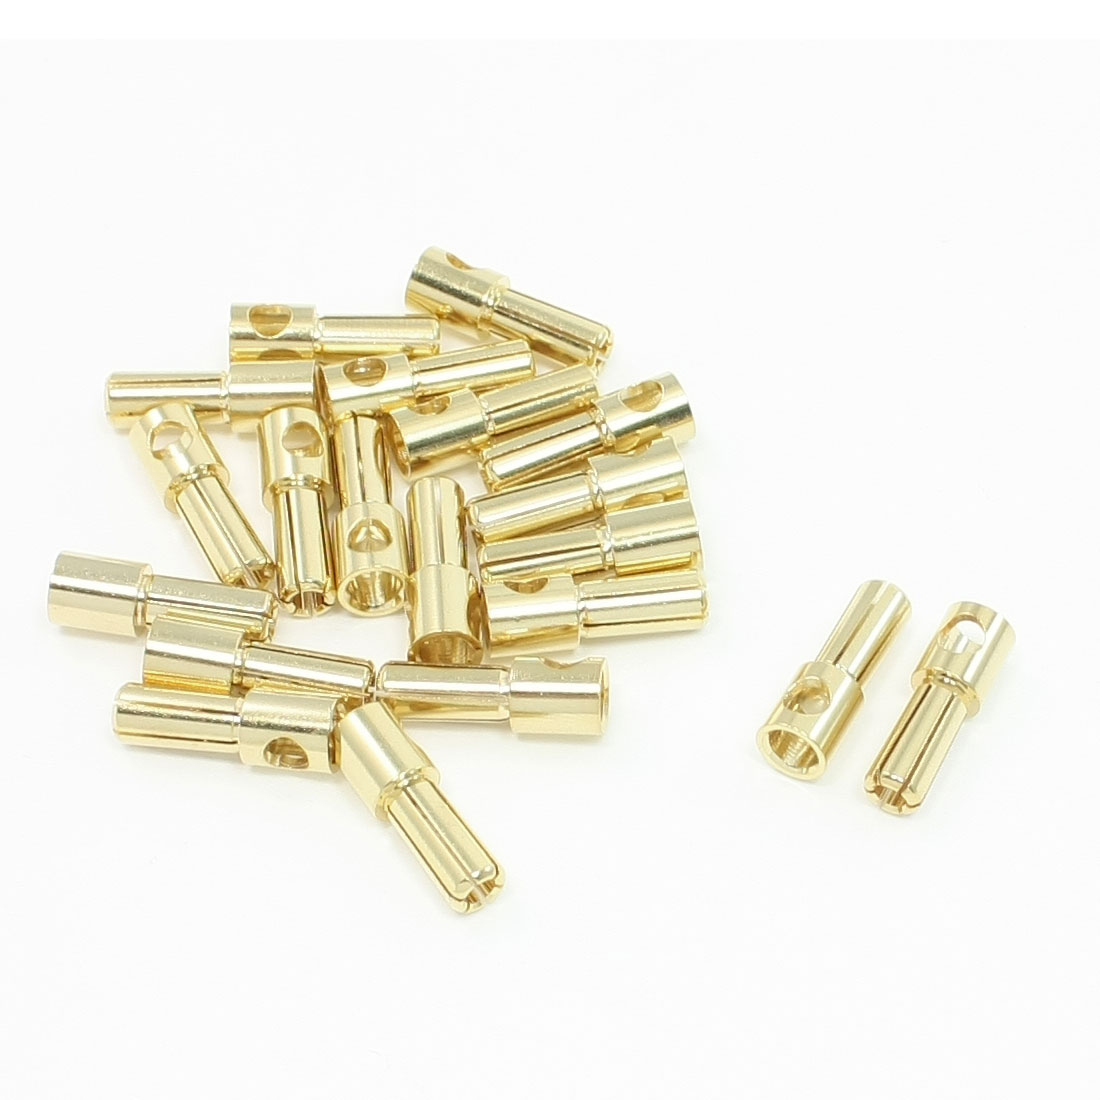 MH1158 Gold Tone Metal RC Banana Connector Male 5mm 20PCS